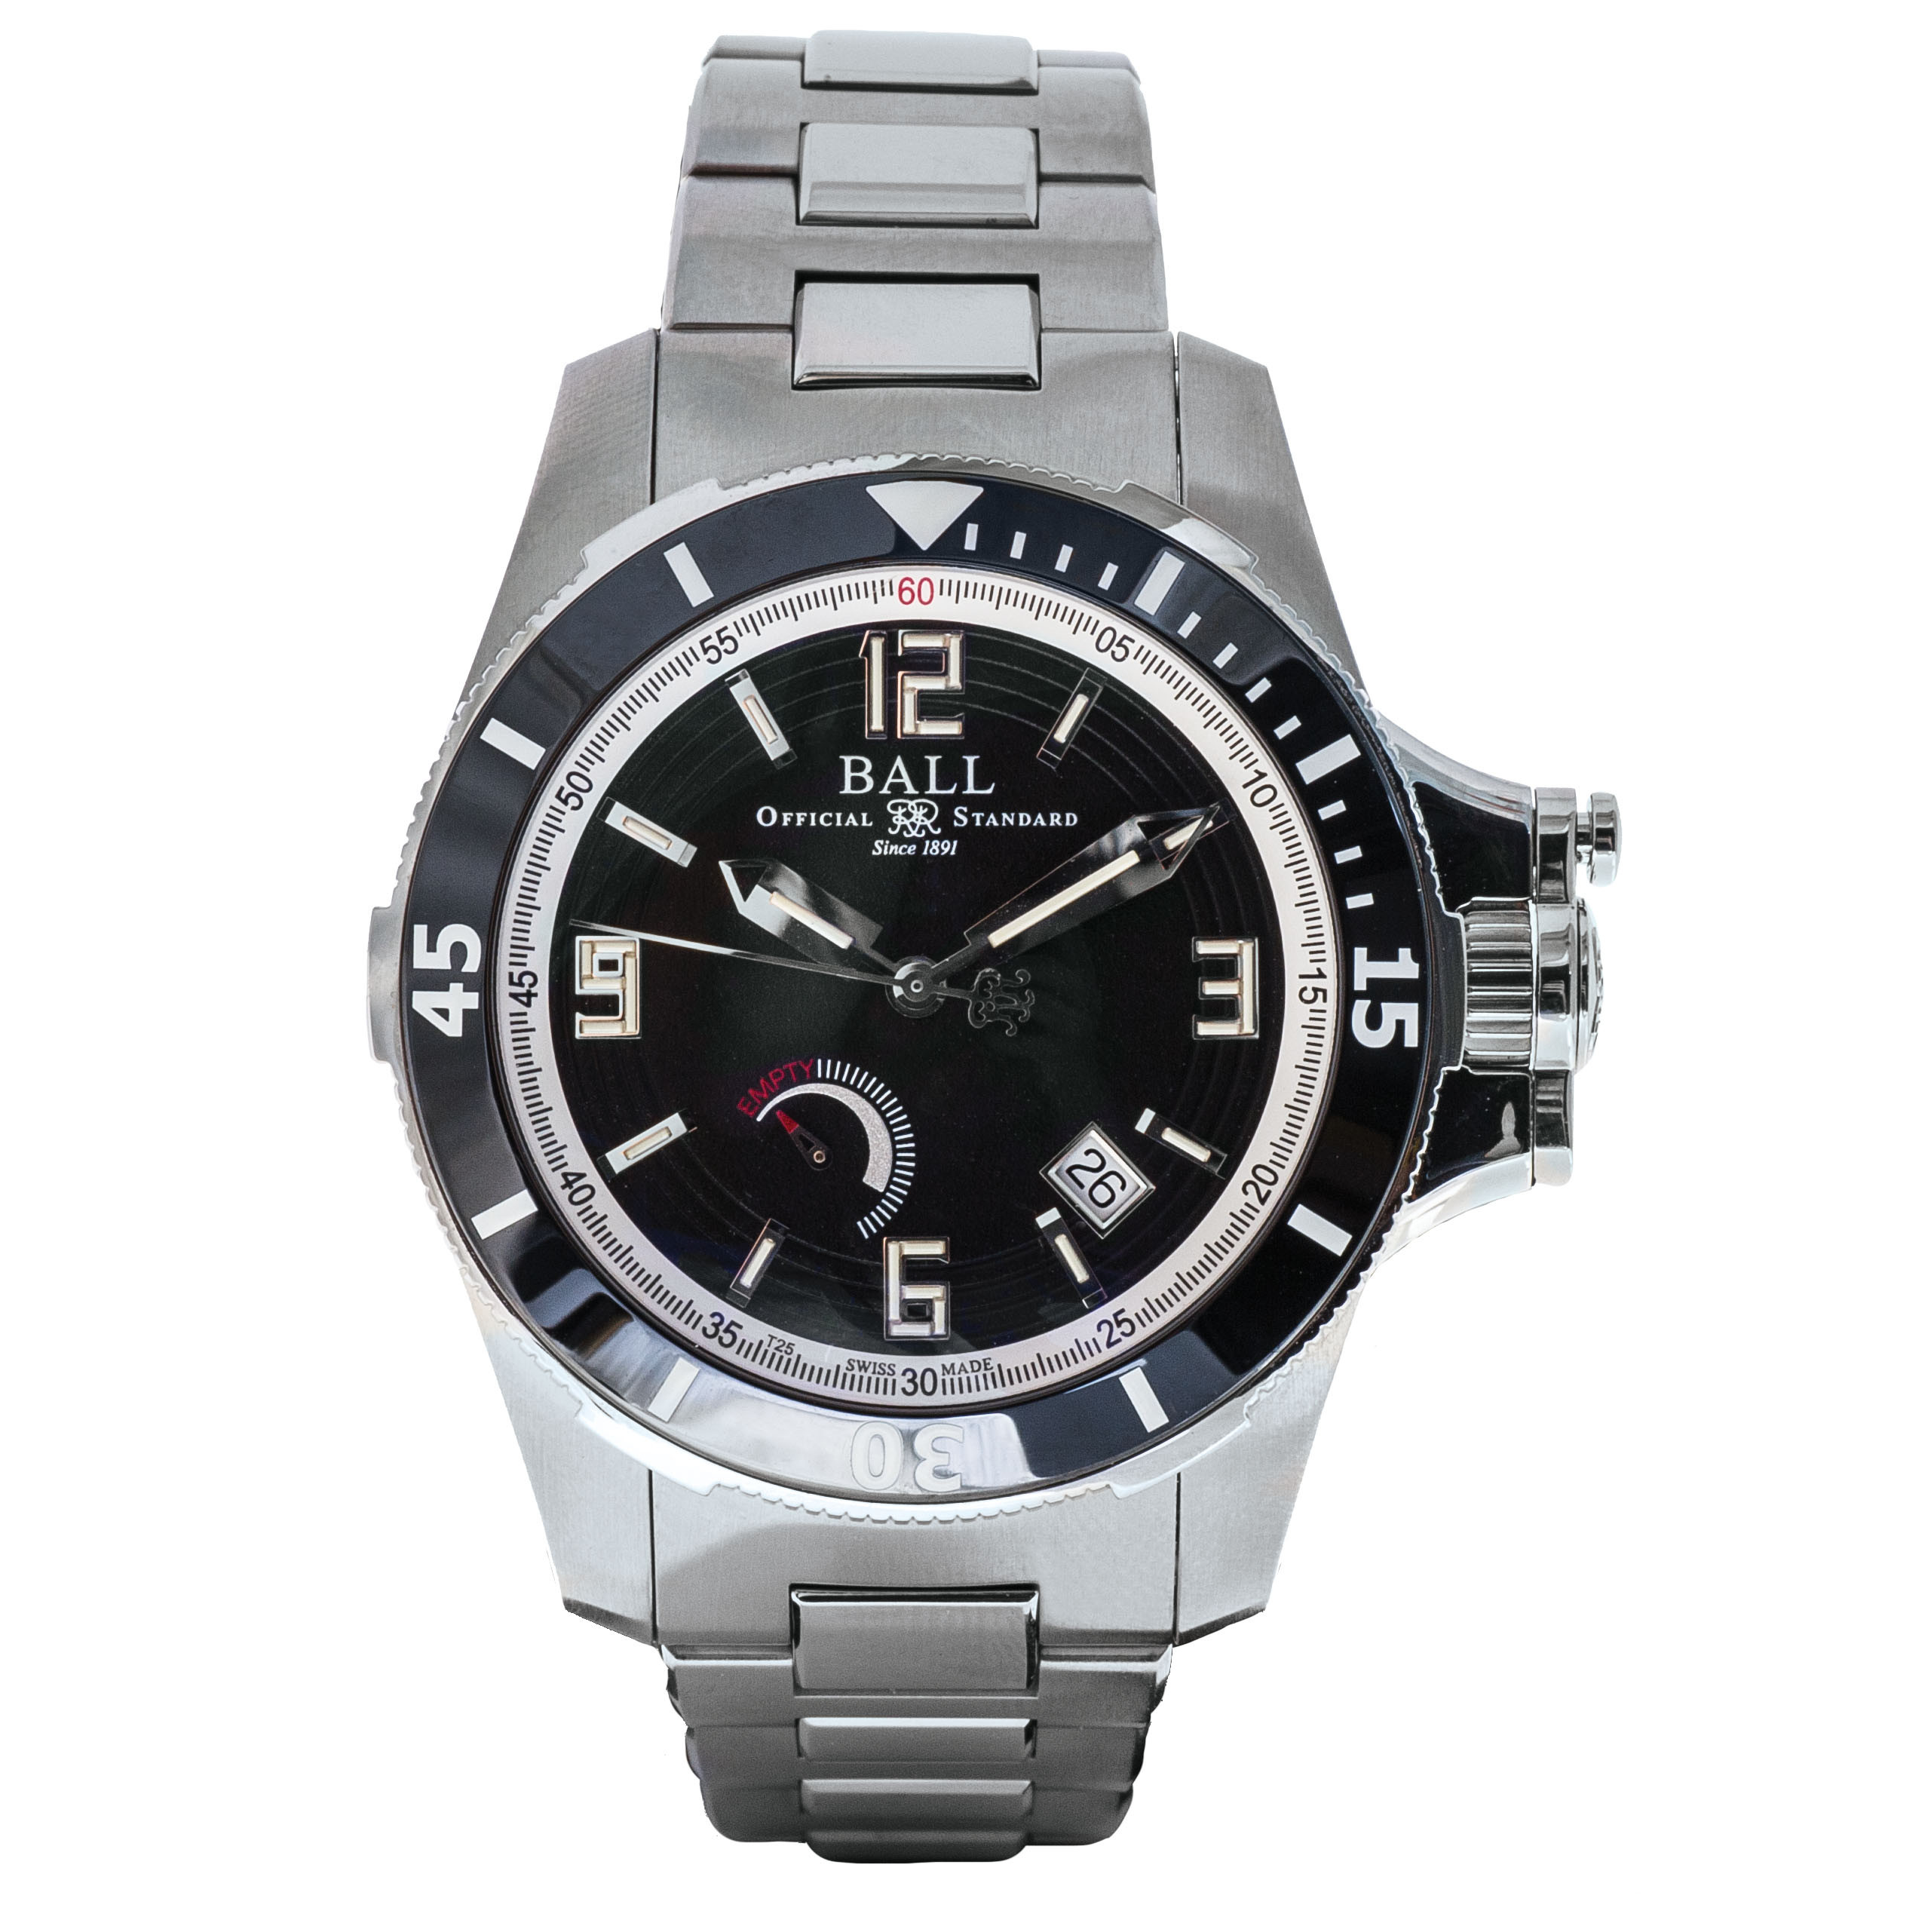 New Ball Men's Engineer Hydrocarbon Hunley 150th Anniversary